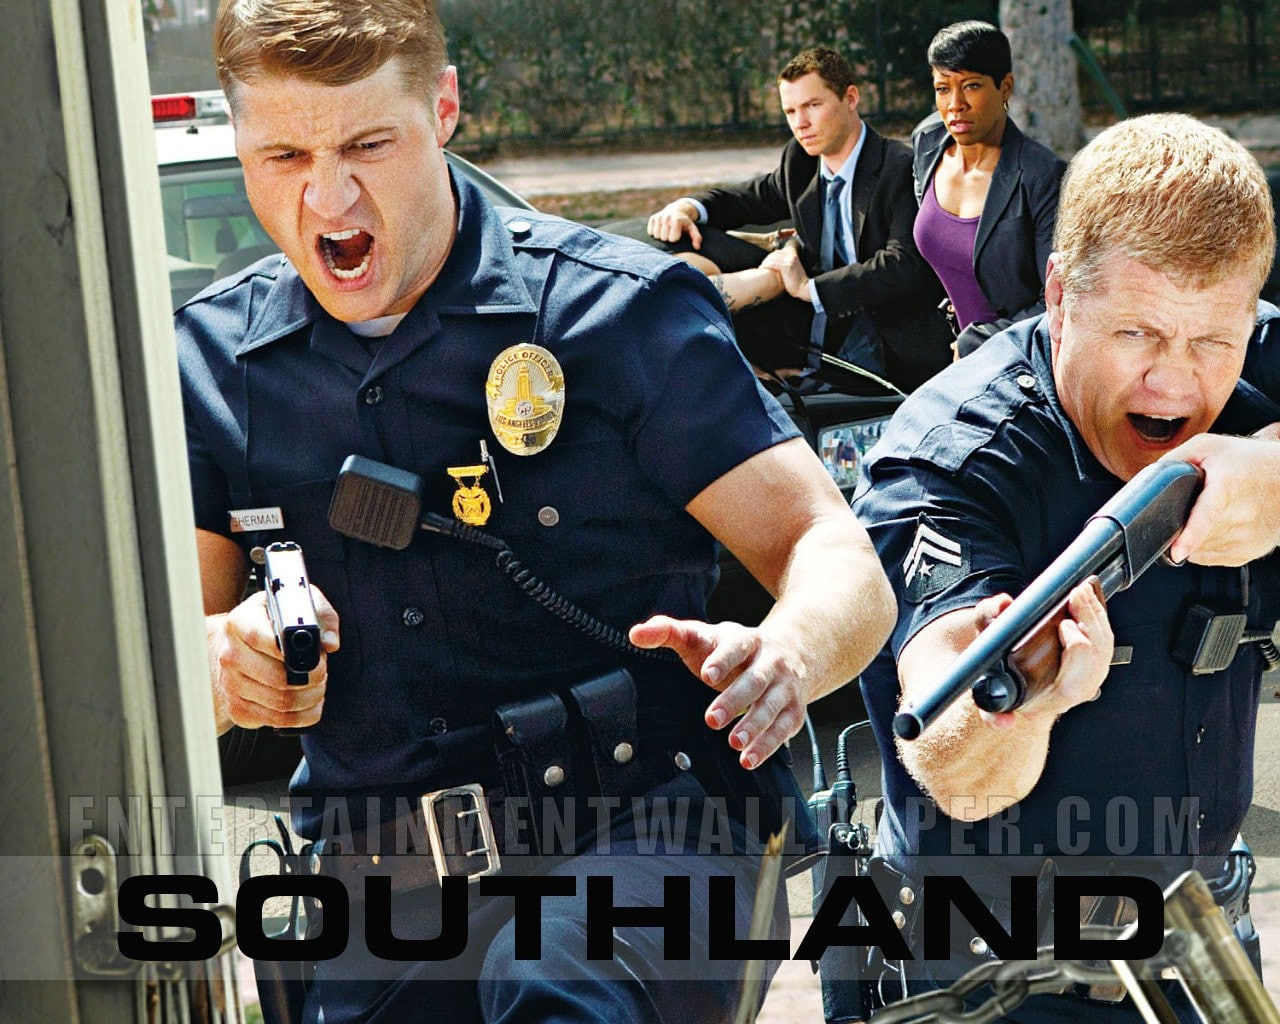 southland04